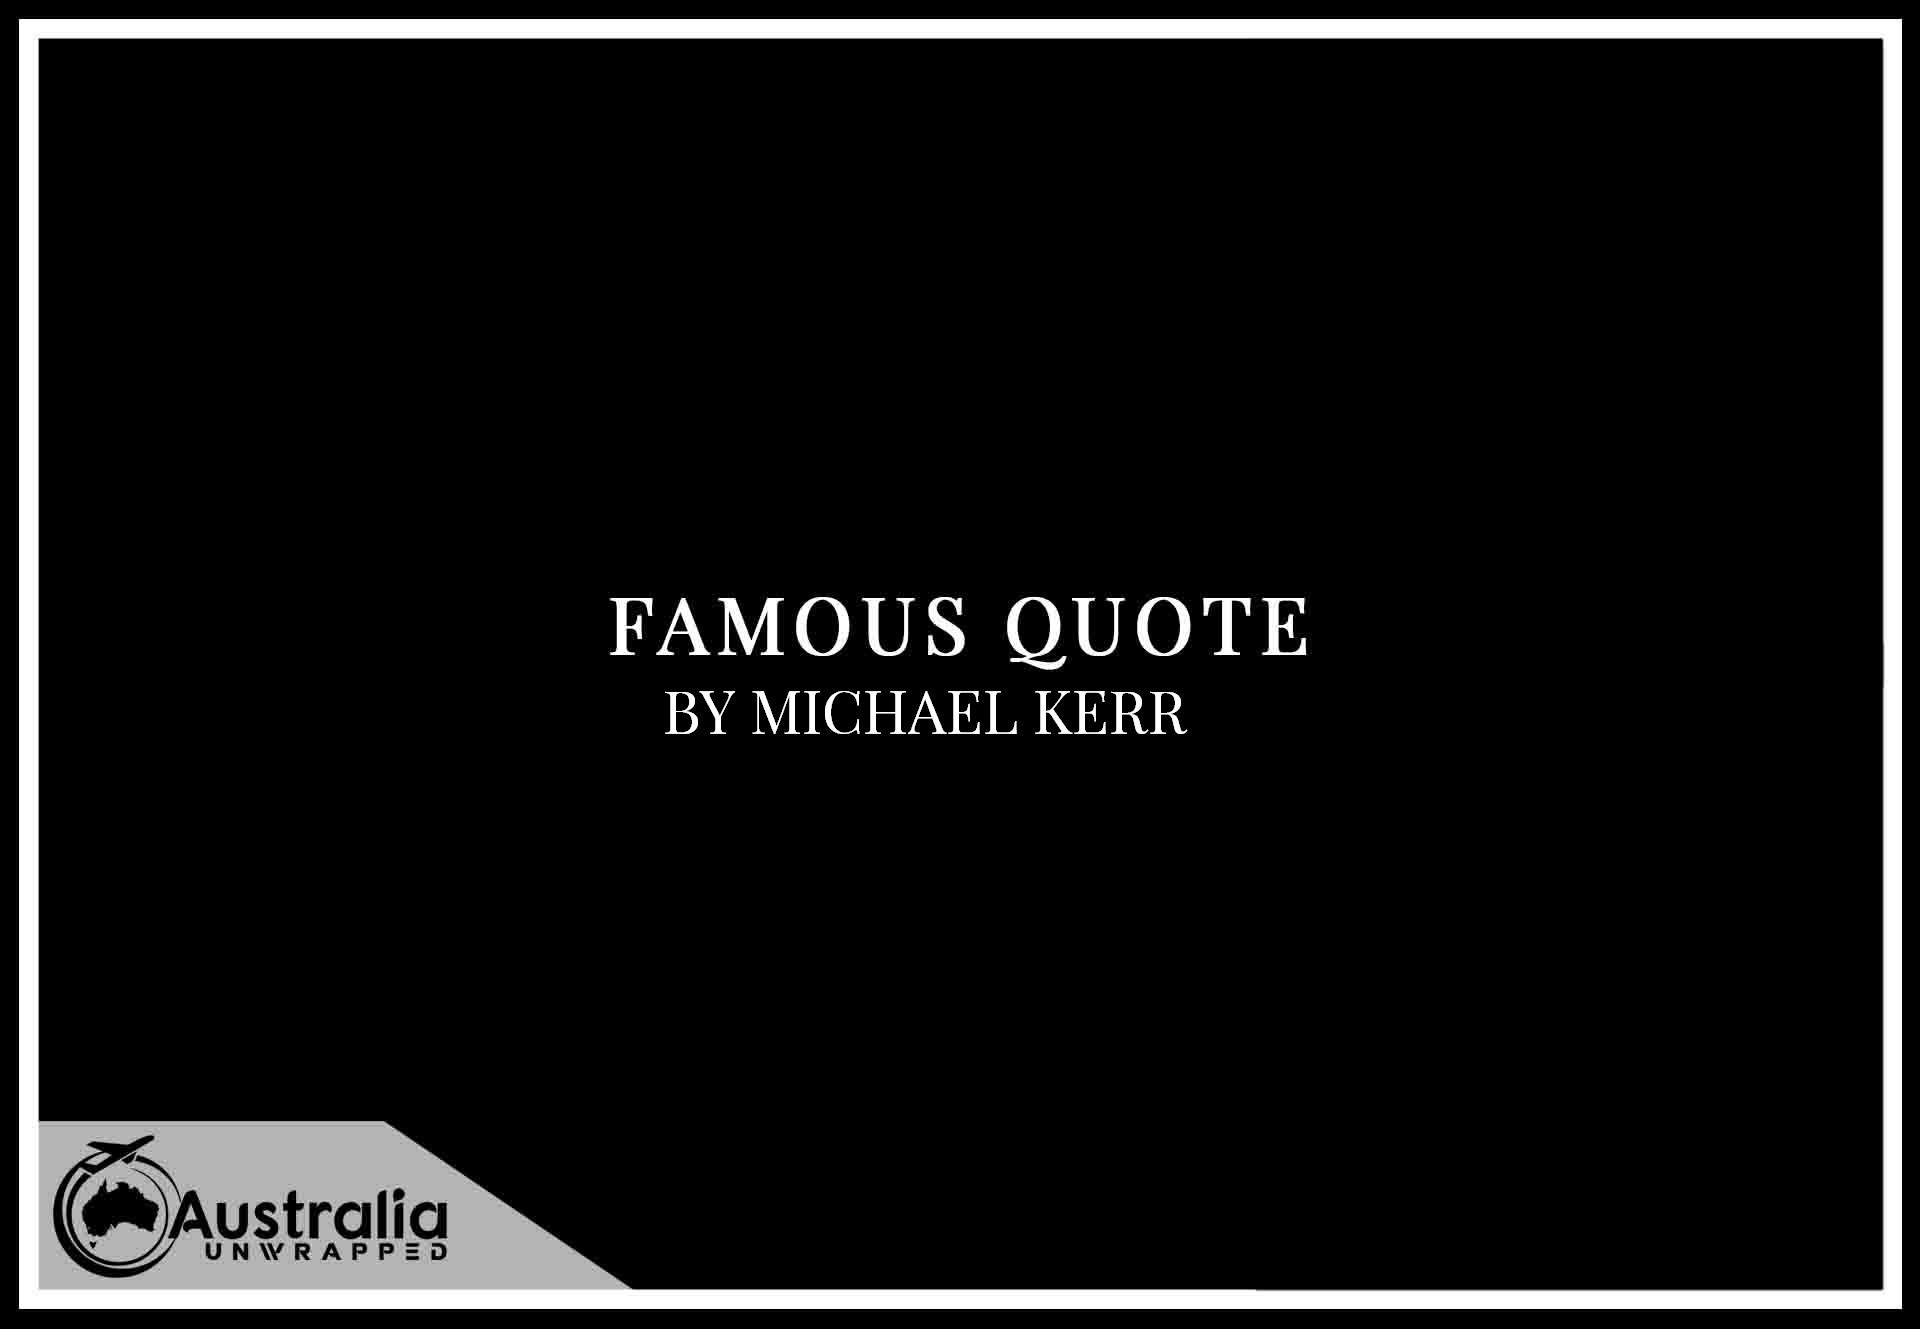 Top 1 Famous Quotes by Author Michael Kerr